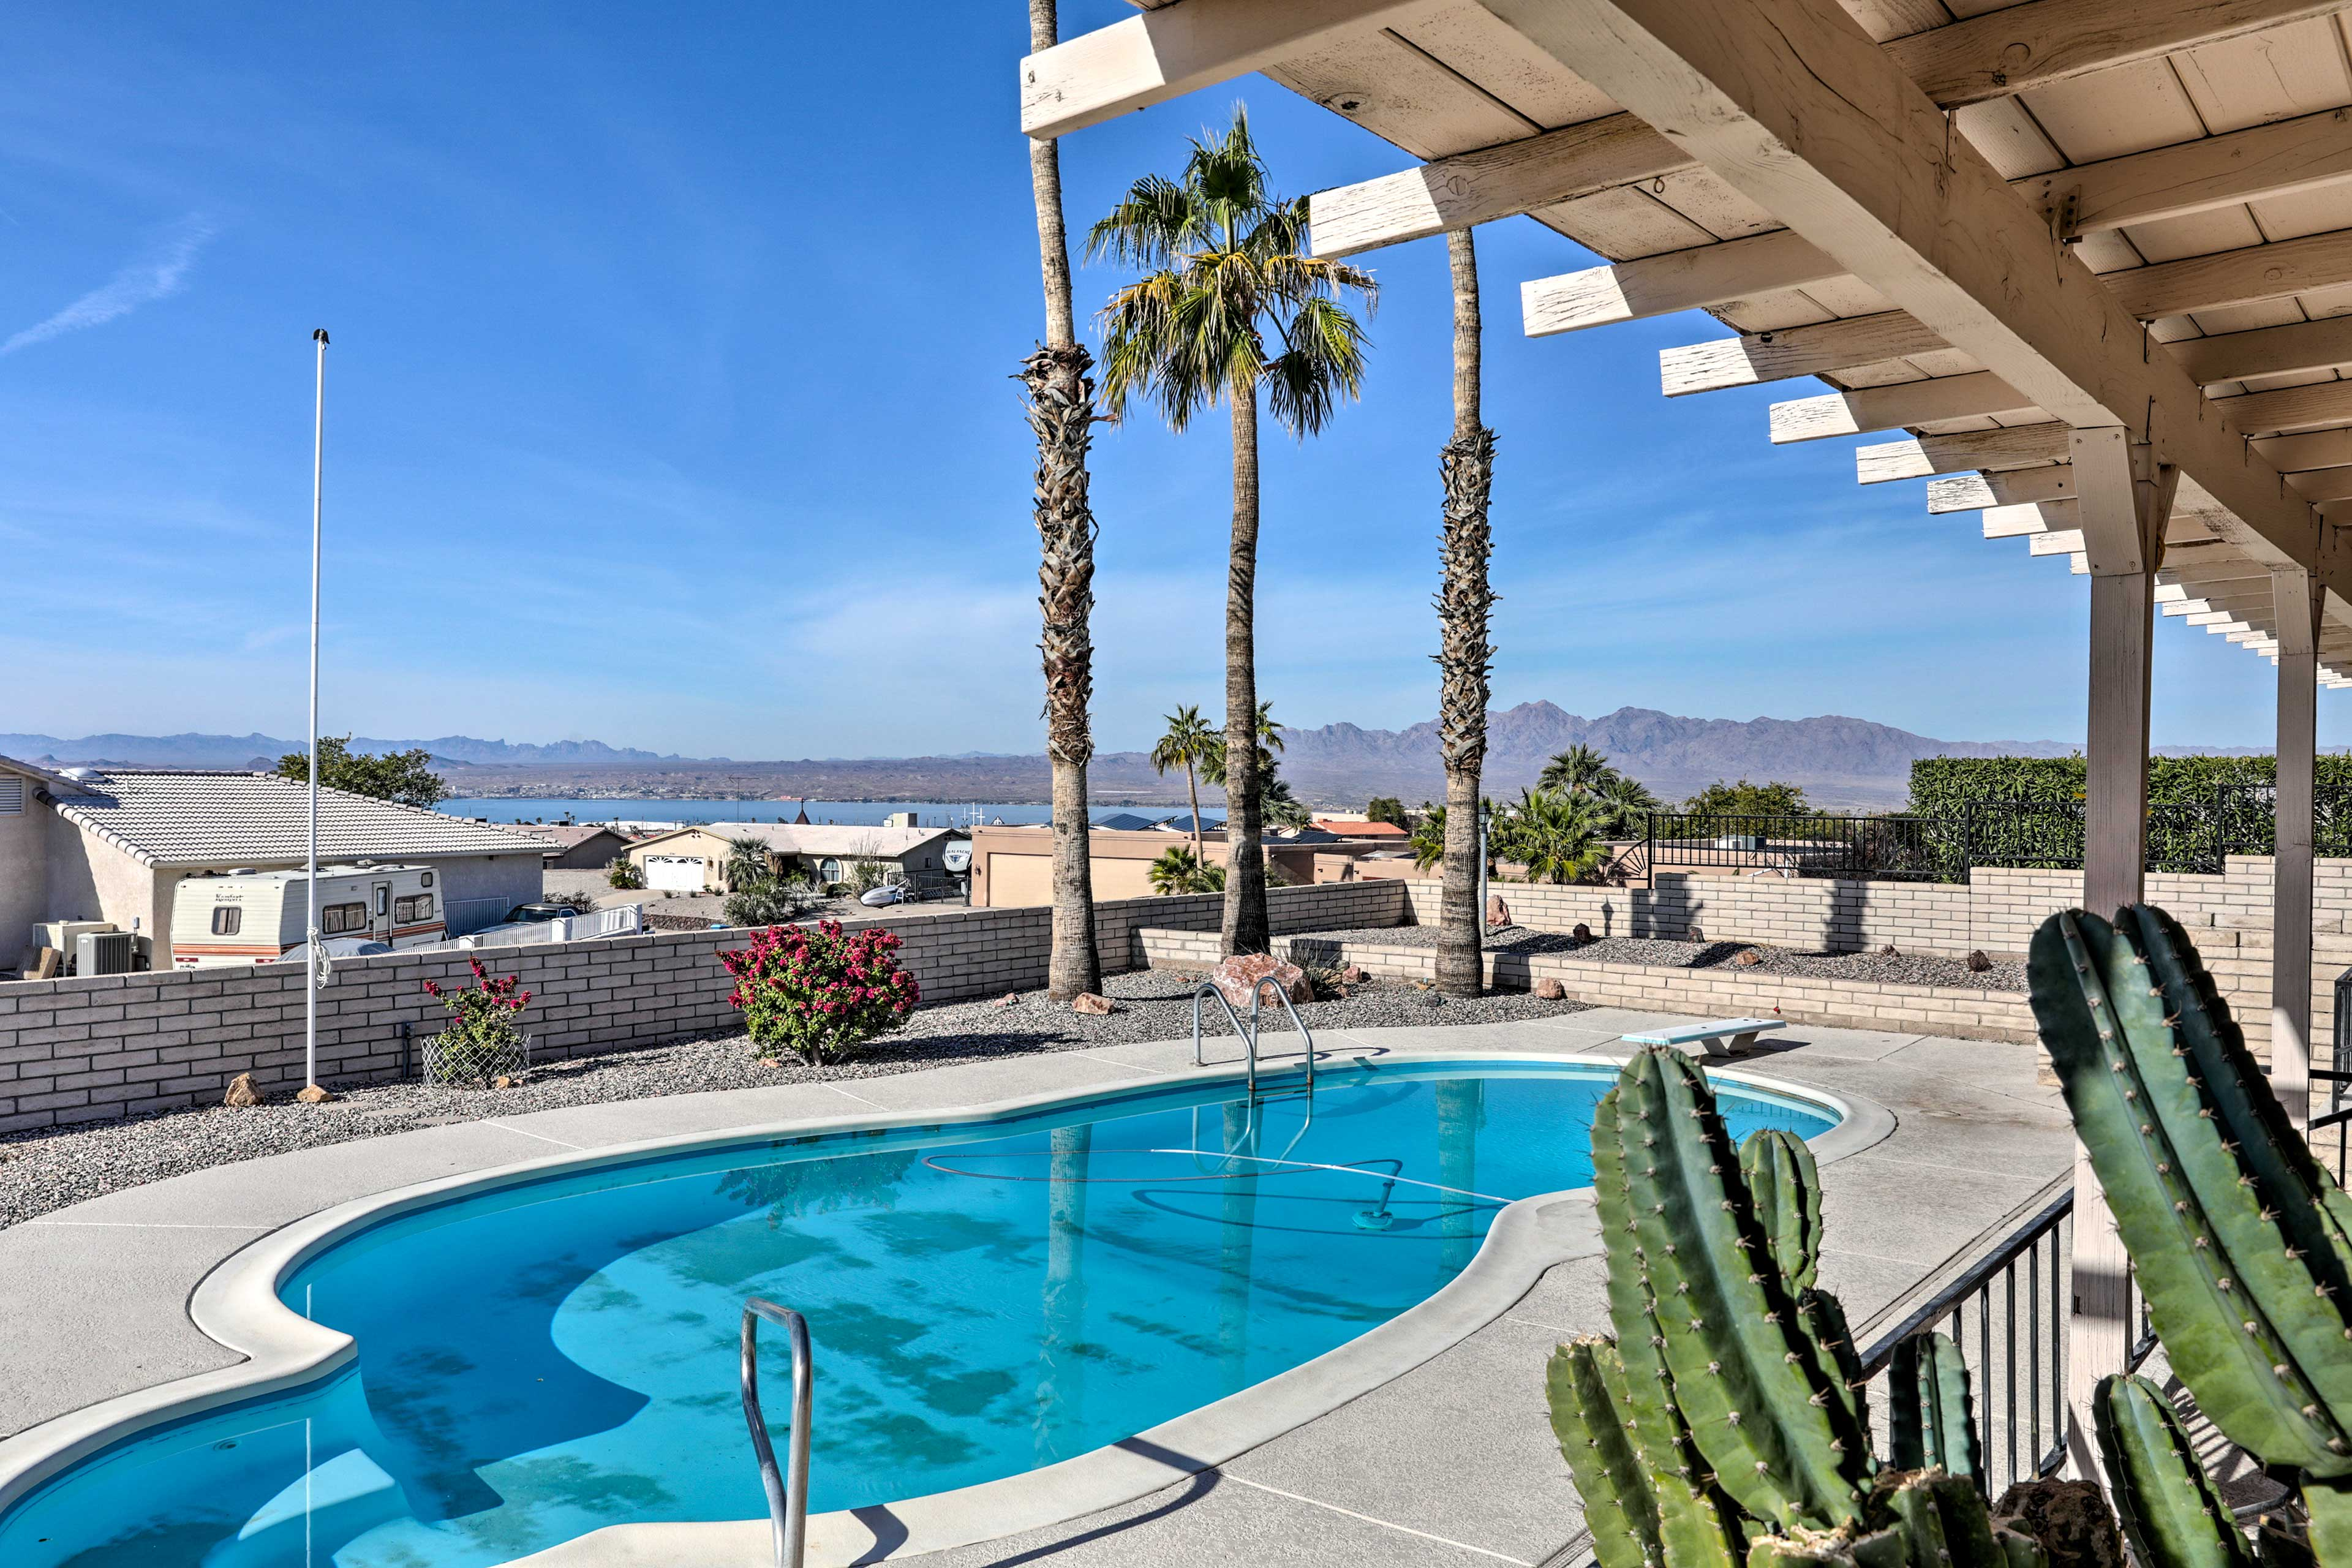 Loaded with amenities, this 3-bed, 2-bath home is a true desert gem!